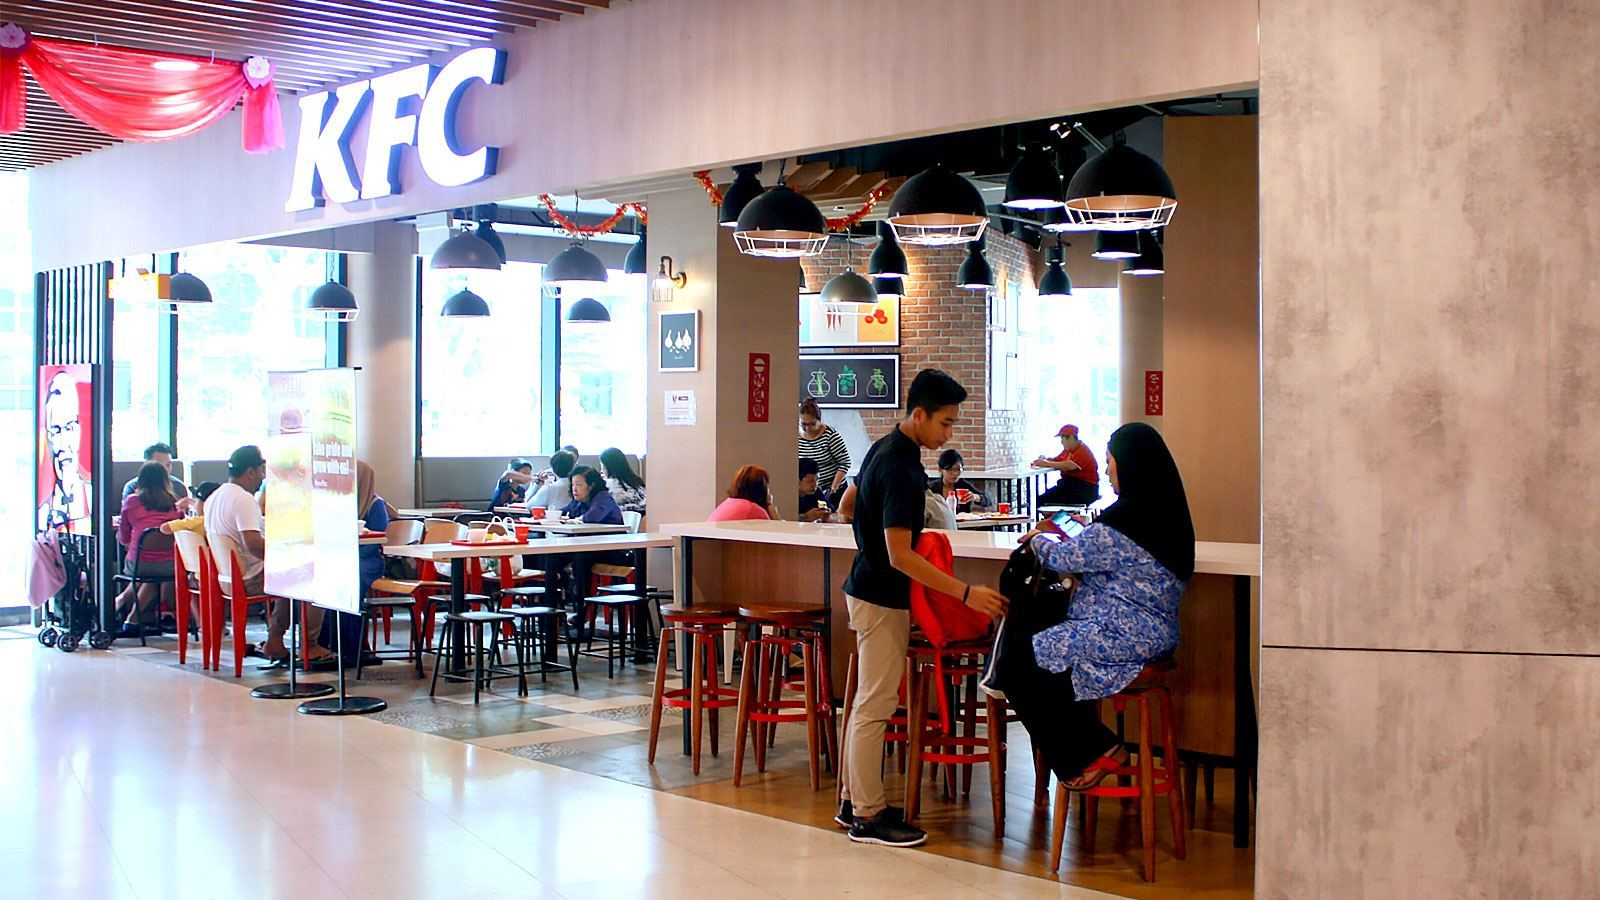 Acumatica Cloud ERP solution for KFC Singapore